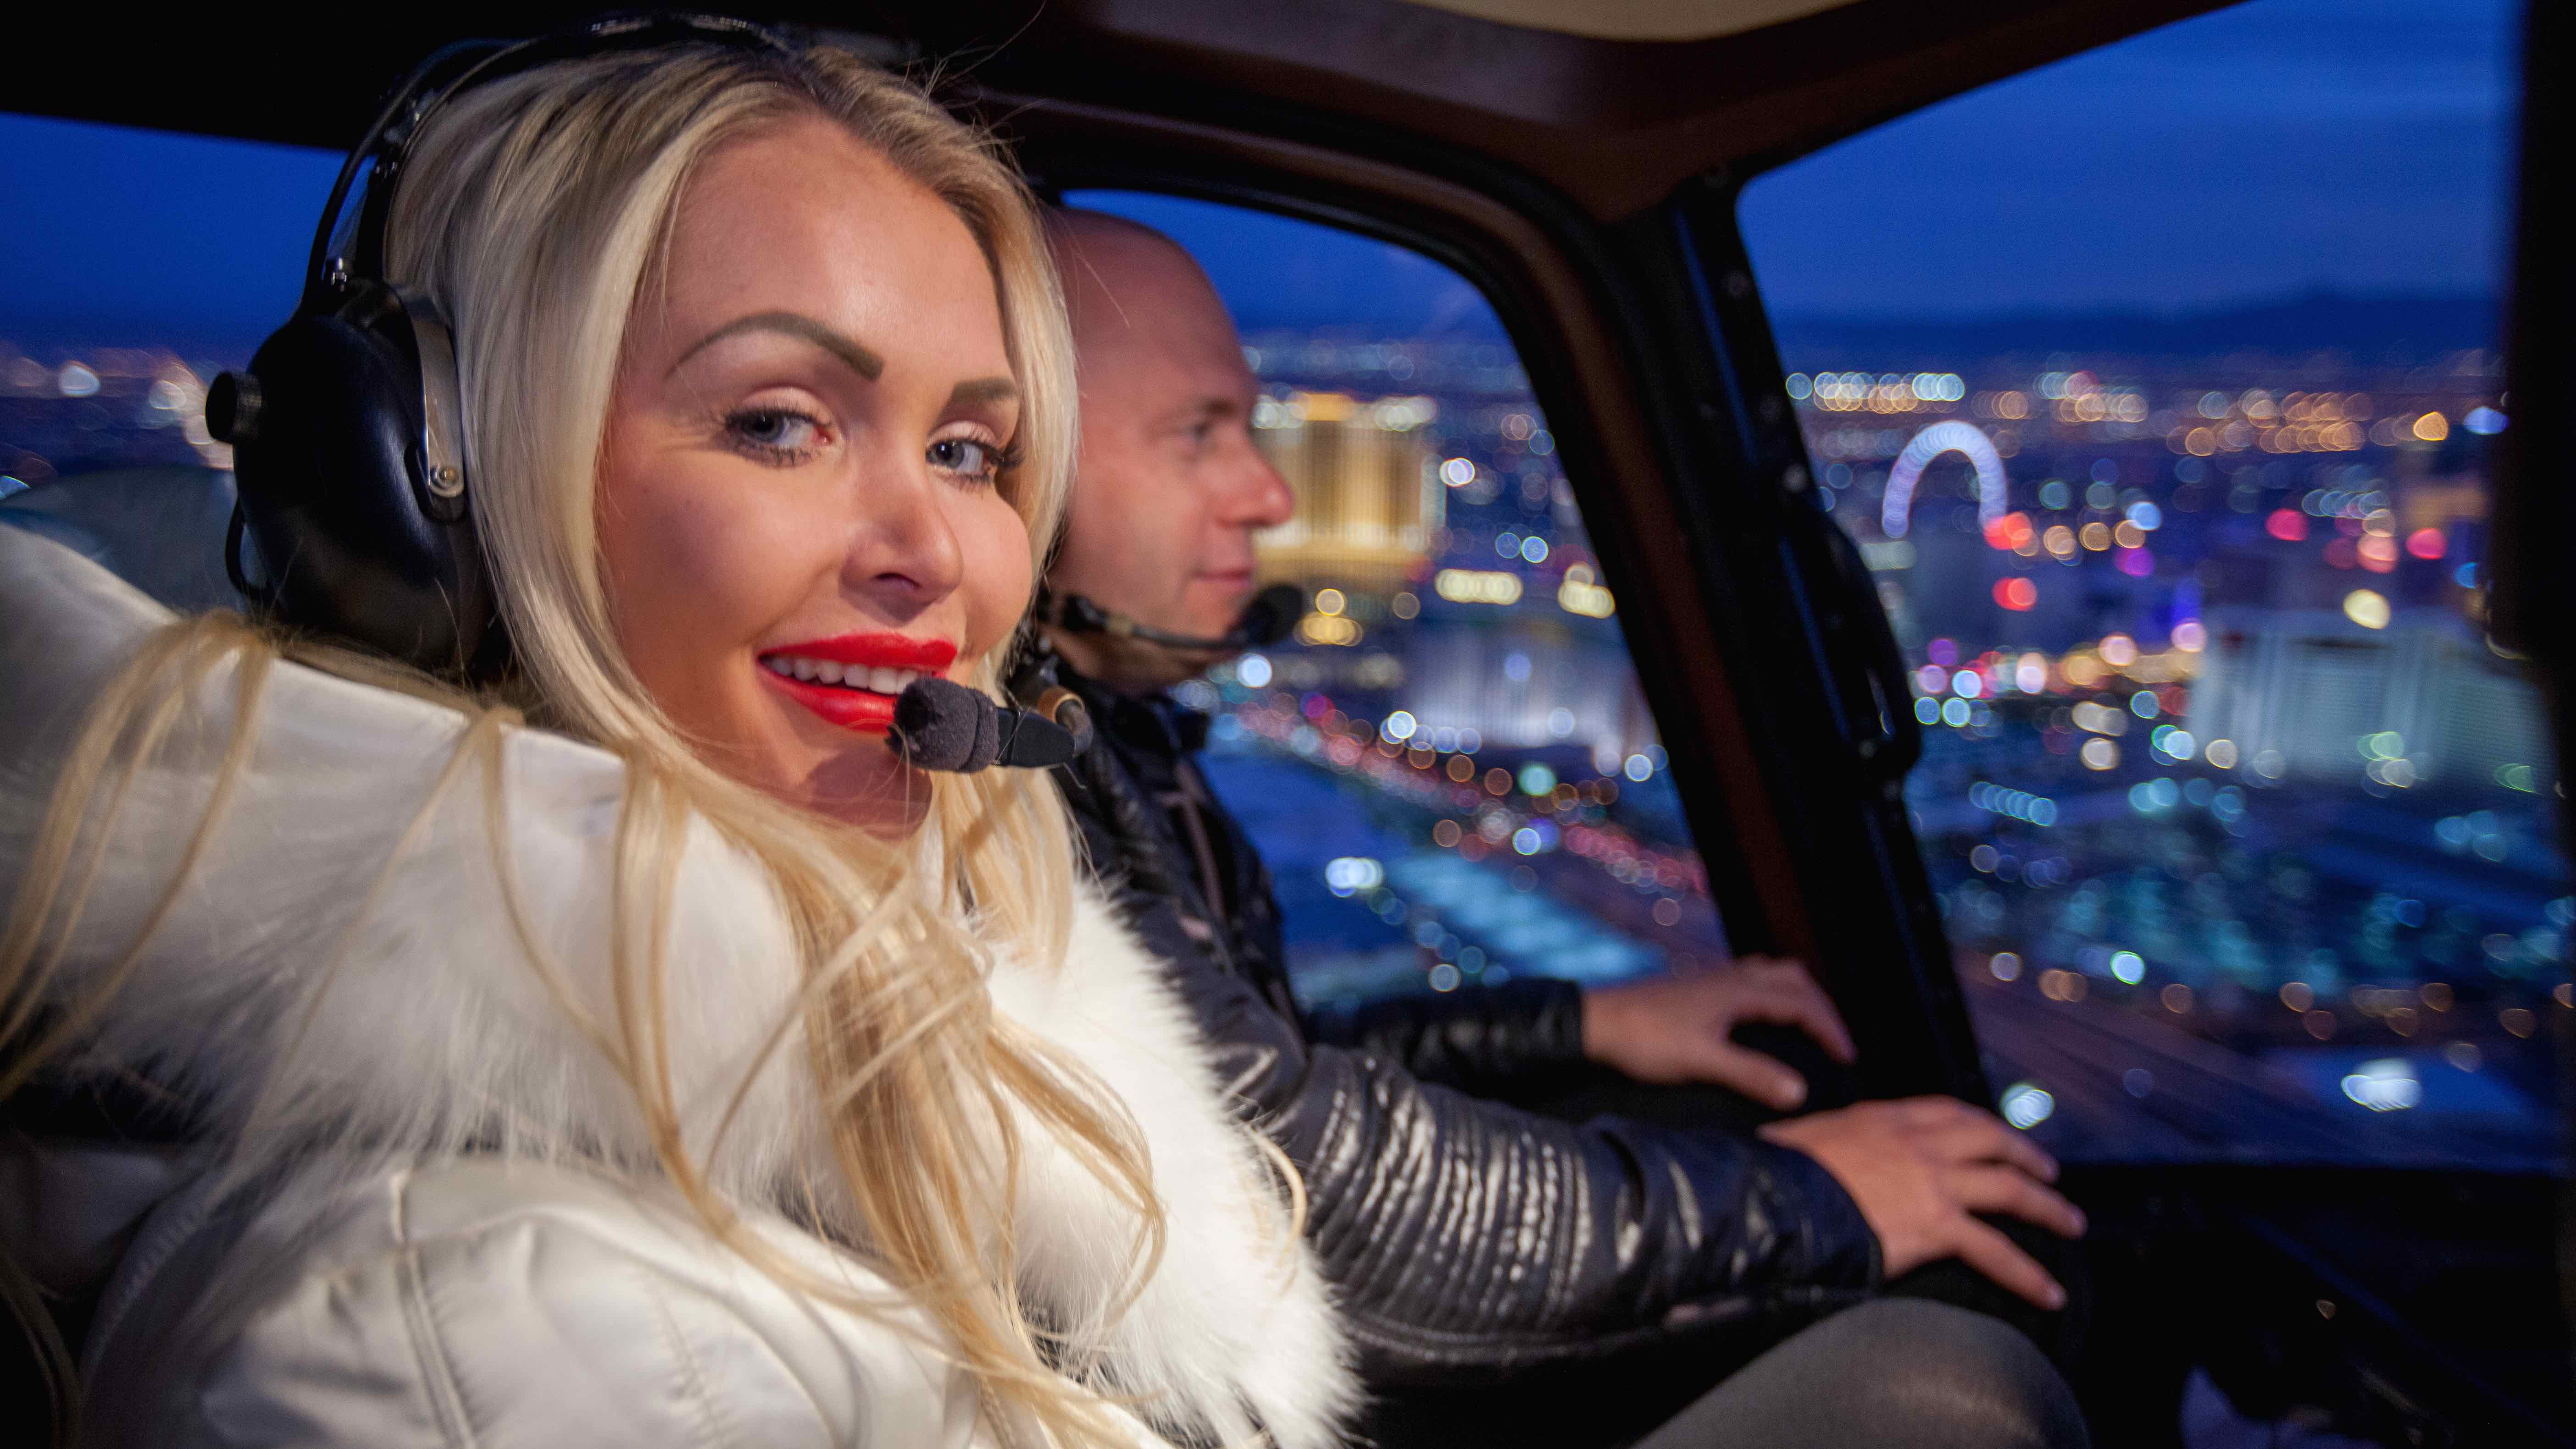 helicopter rides in las vegas with Las Vegas Night Strip Helicopter Flight on Hadrian V Twin Route 66 Guided Motorcycle Tour further Fashion Show Mall Las Vegas also Orlando further Black Canyon River Rafting Tour And Grand Canyon Helicopter Flight besides Funny Valentines Day Memes For 2016.